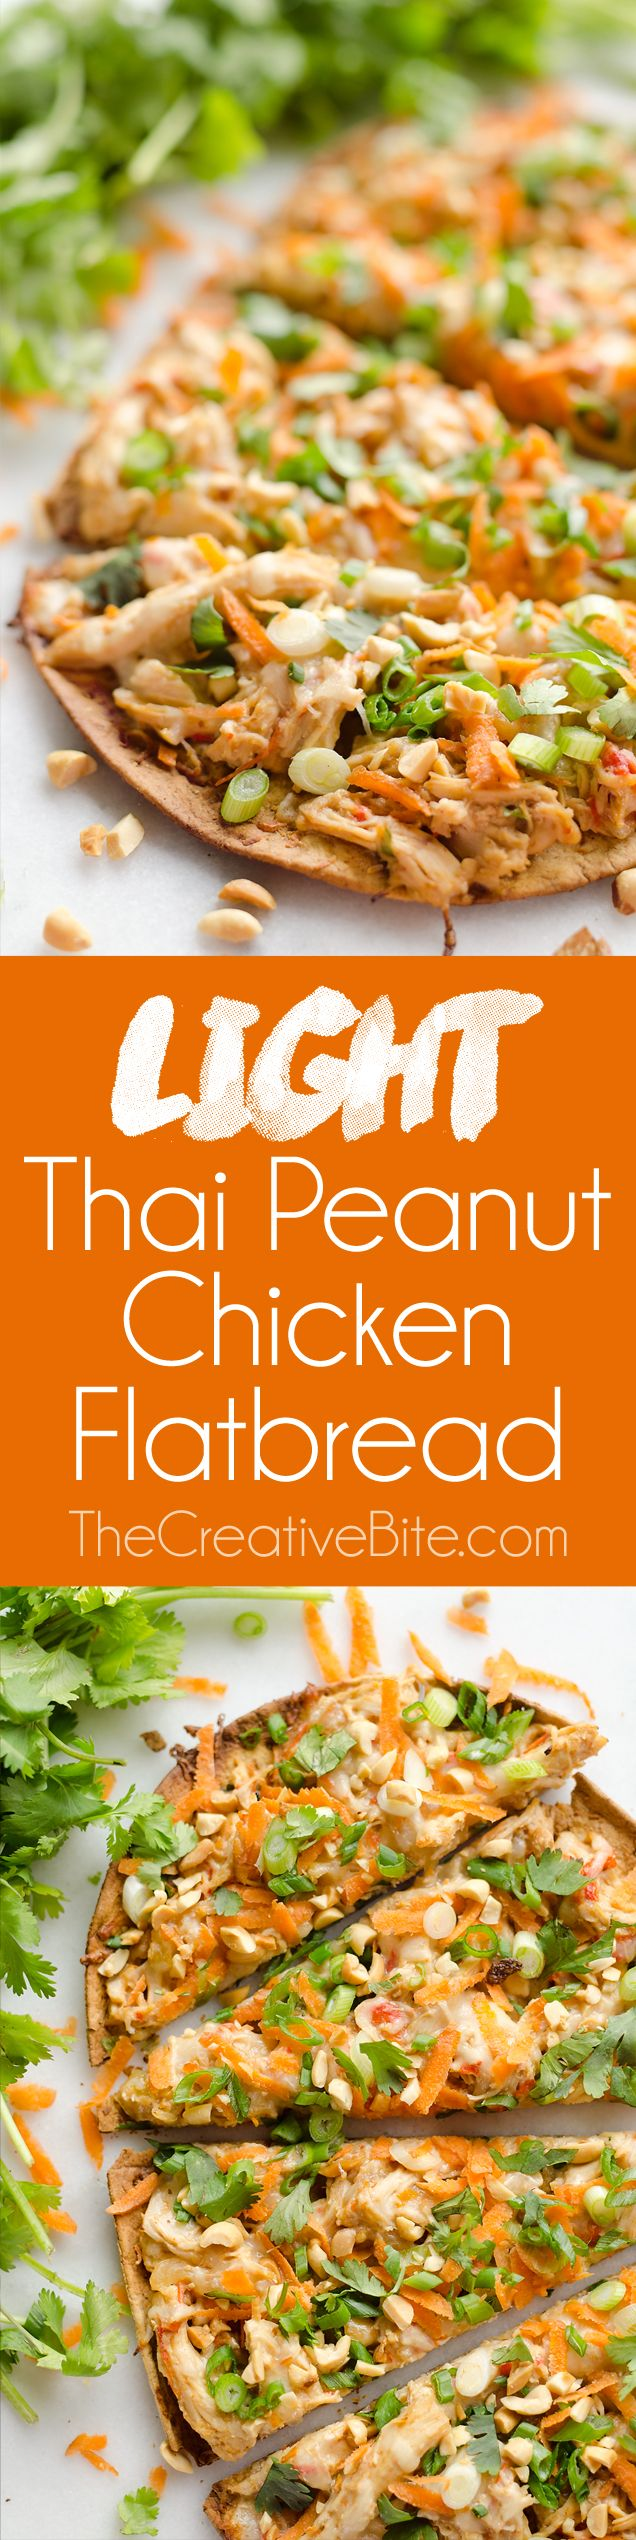 Light Thai Peanut Chicken Flatbread is a quick and healthy recipe perfect for a weeknight dinner! A thin and crispy flatbread is topped with Crock Pot Thai Peanut Chicken, cheese and crunchy vegetables and peanuts. #ThaiPeanut #chicken #Flatbread